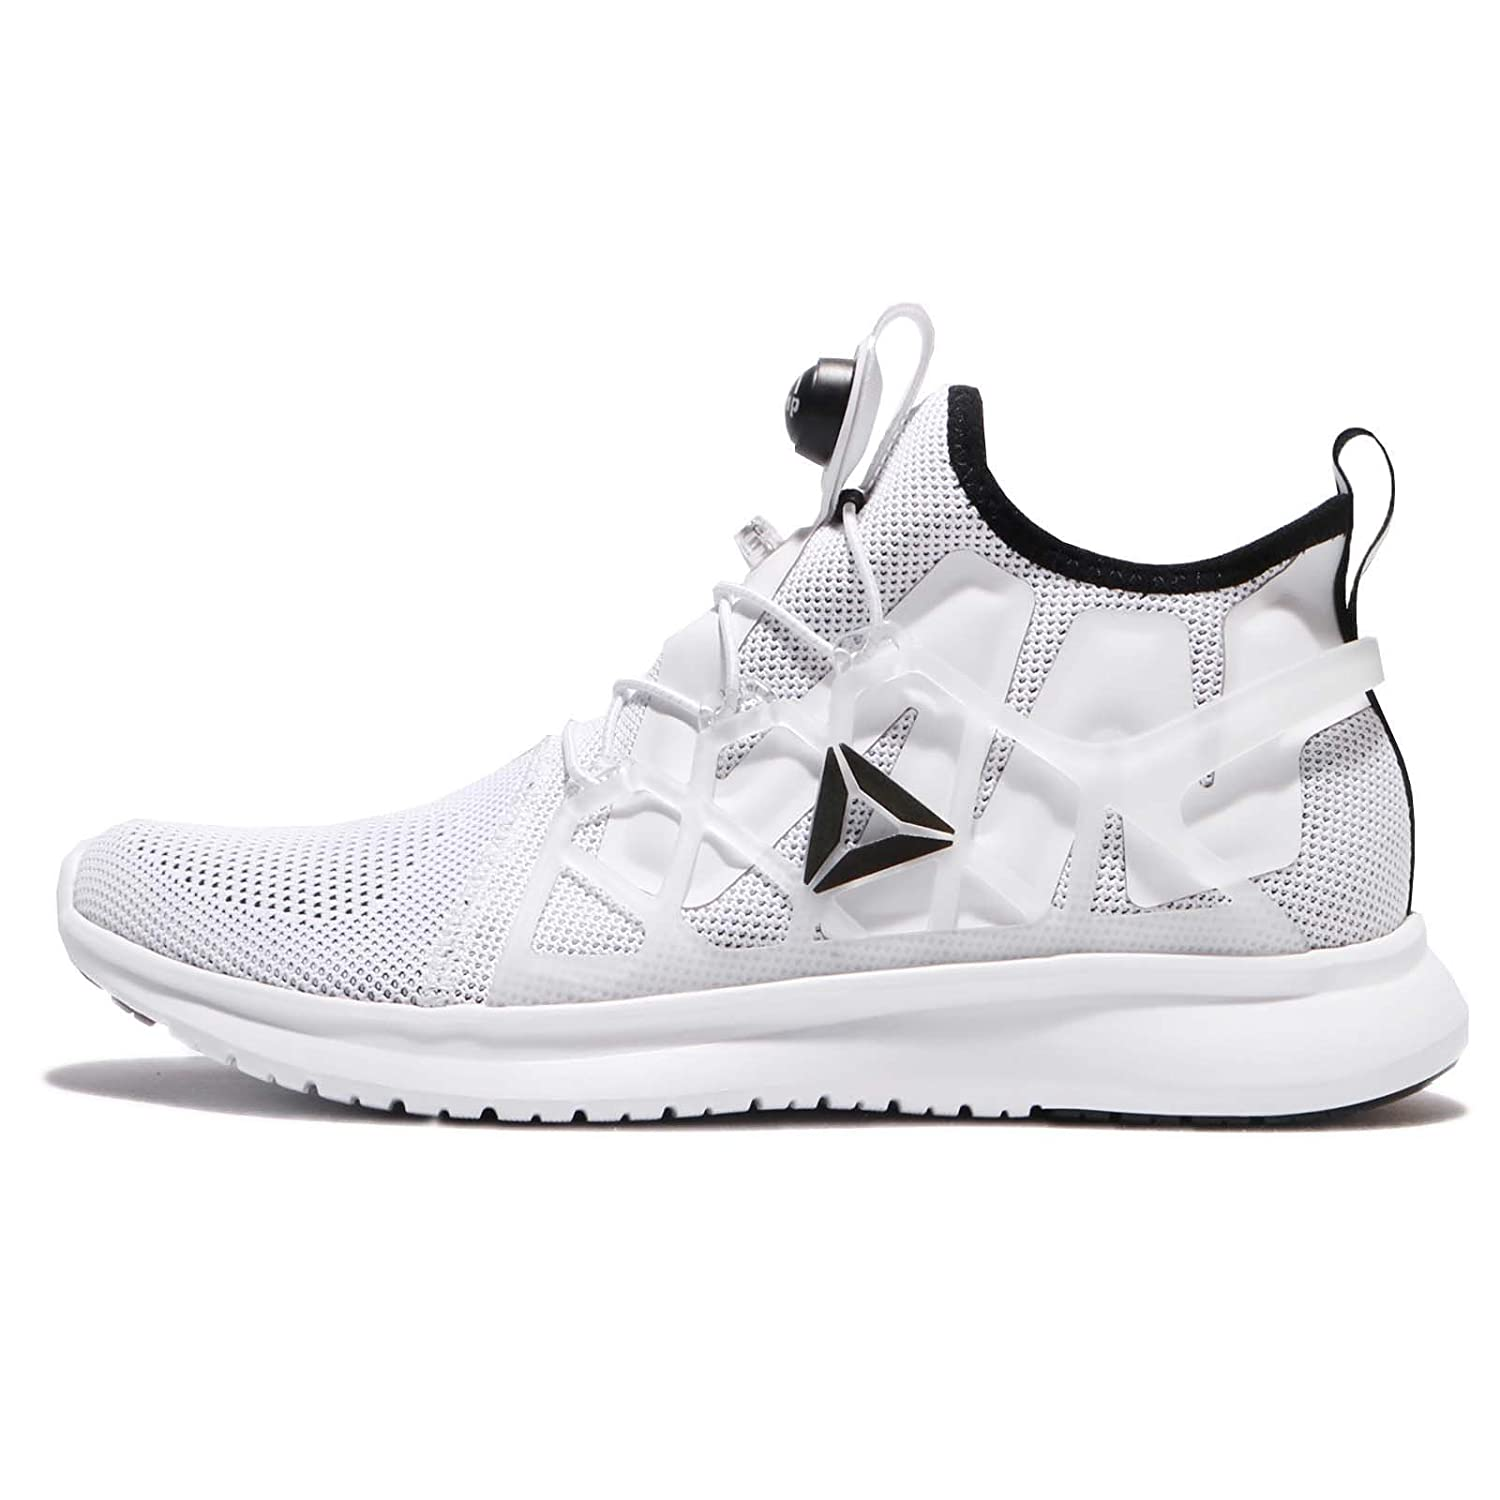 Reebok Pump Plus Cage, Zapatillas de Running para Hombre 44.5 EU|Blanco (White / Black)